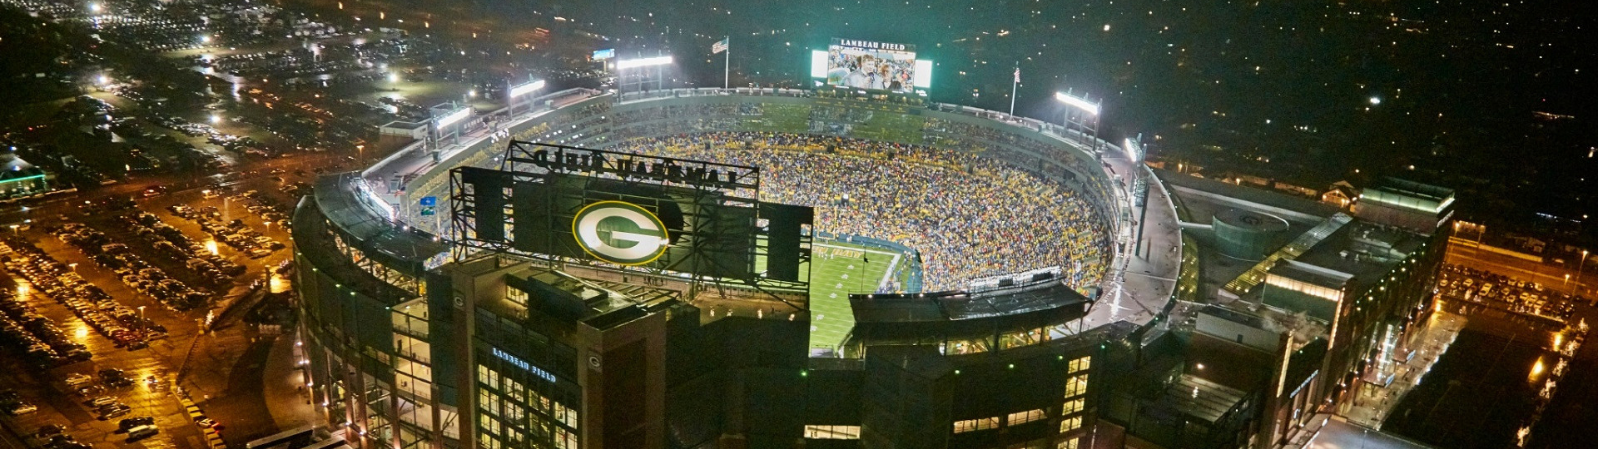 Lambeau Field in Green Bay